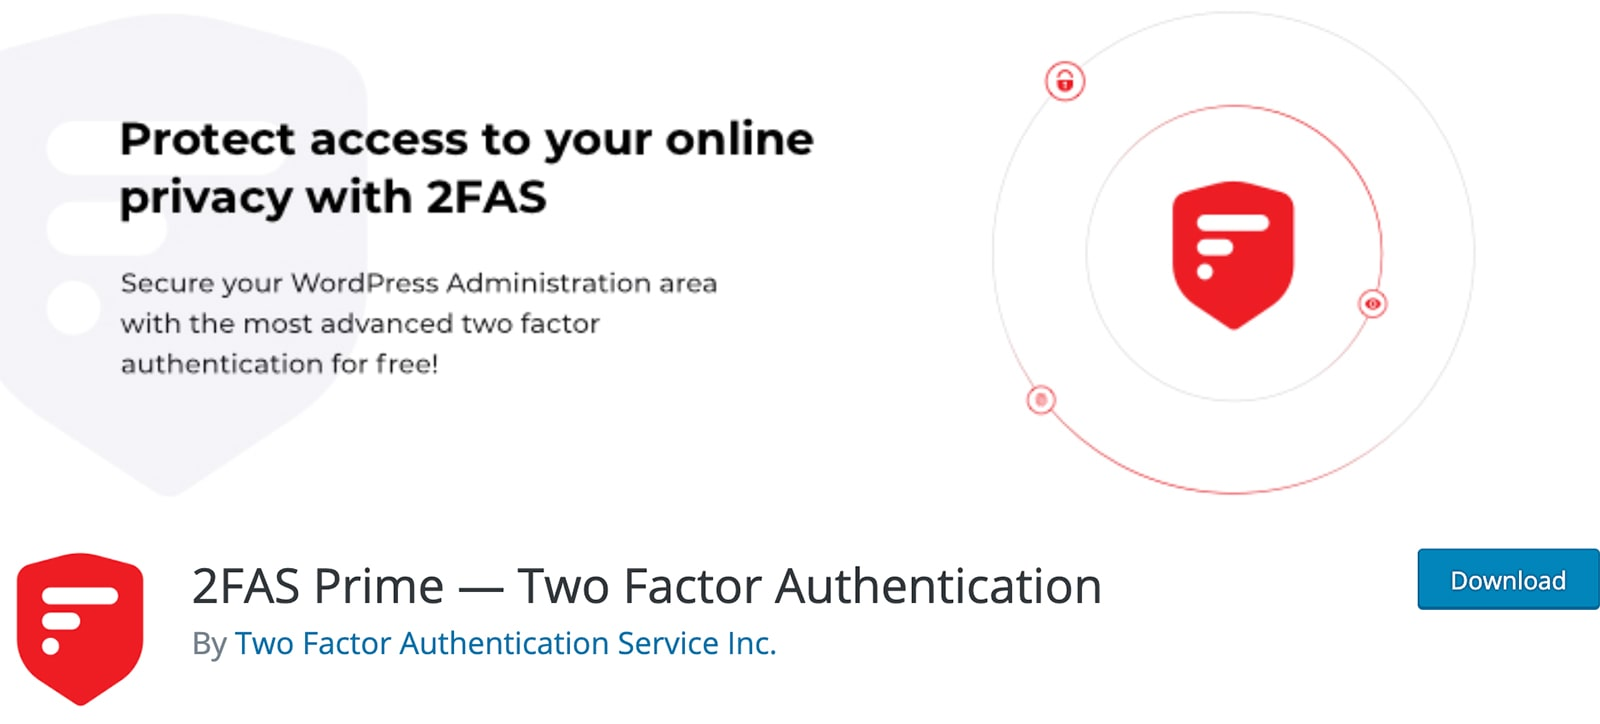 2FAS Prime - Two Factor Authenticator